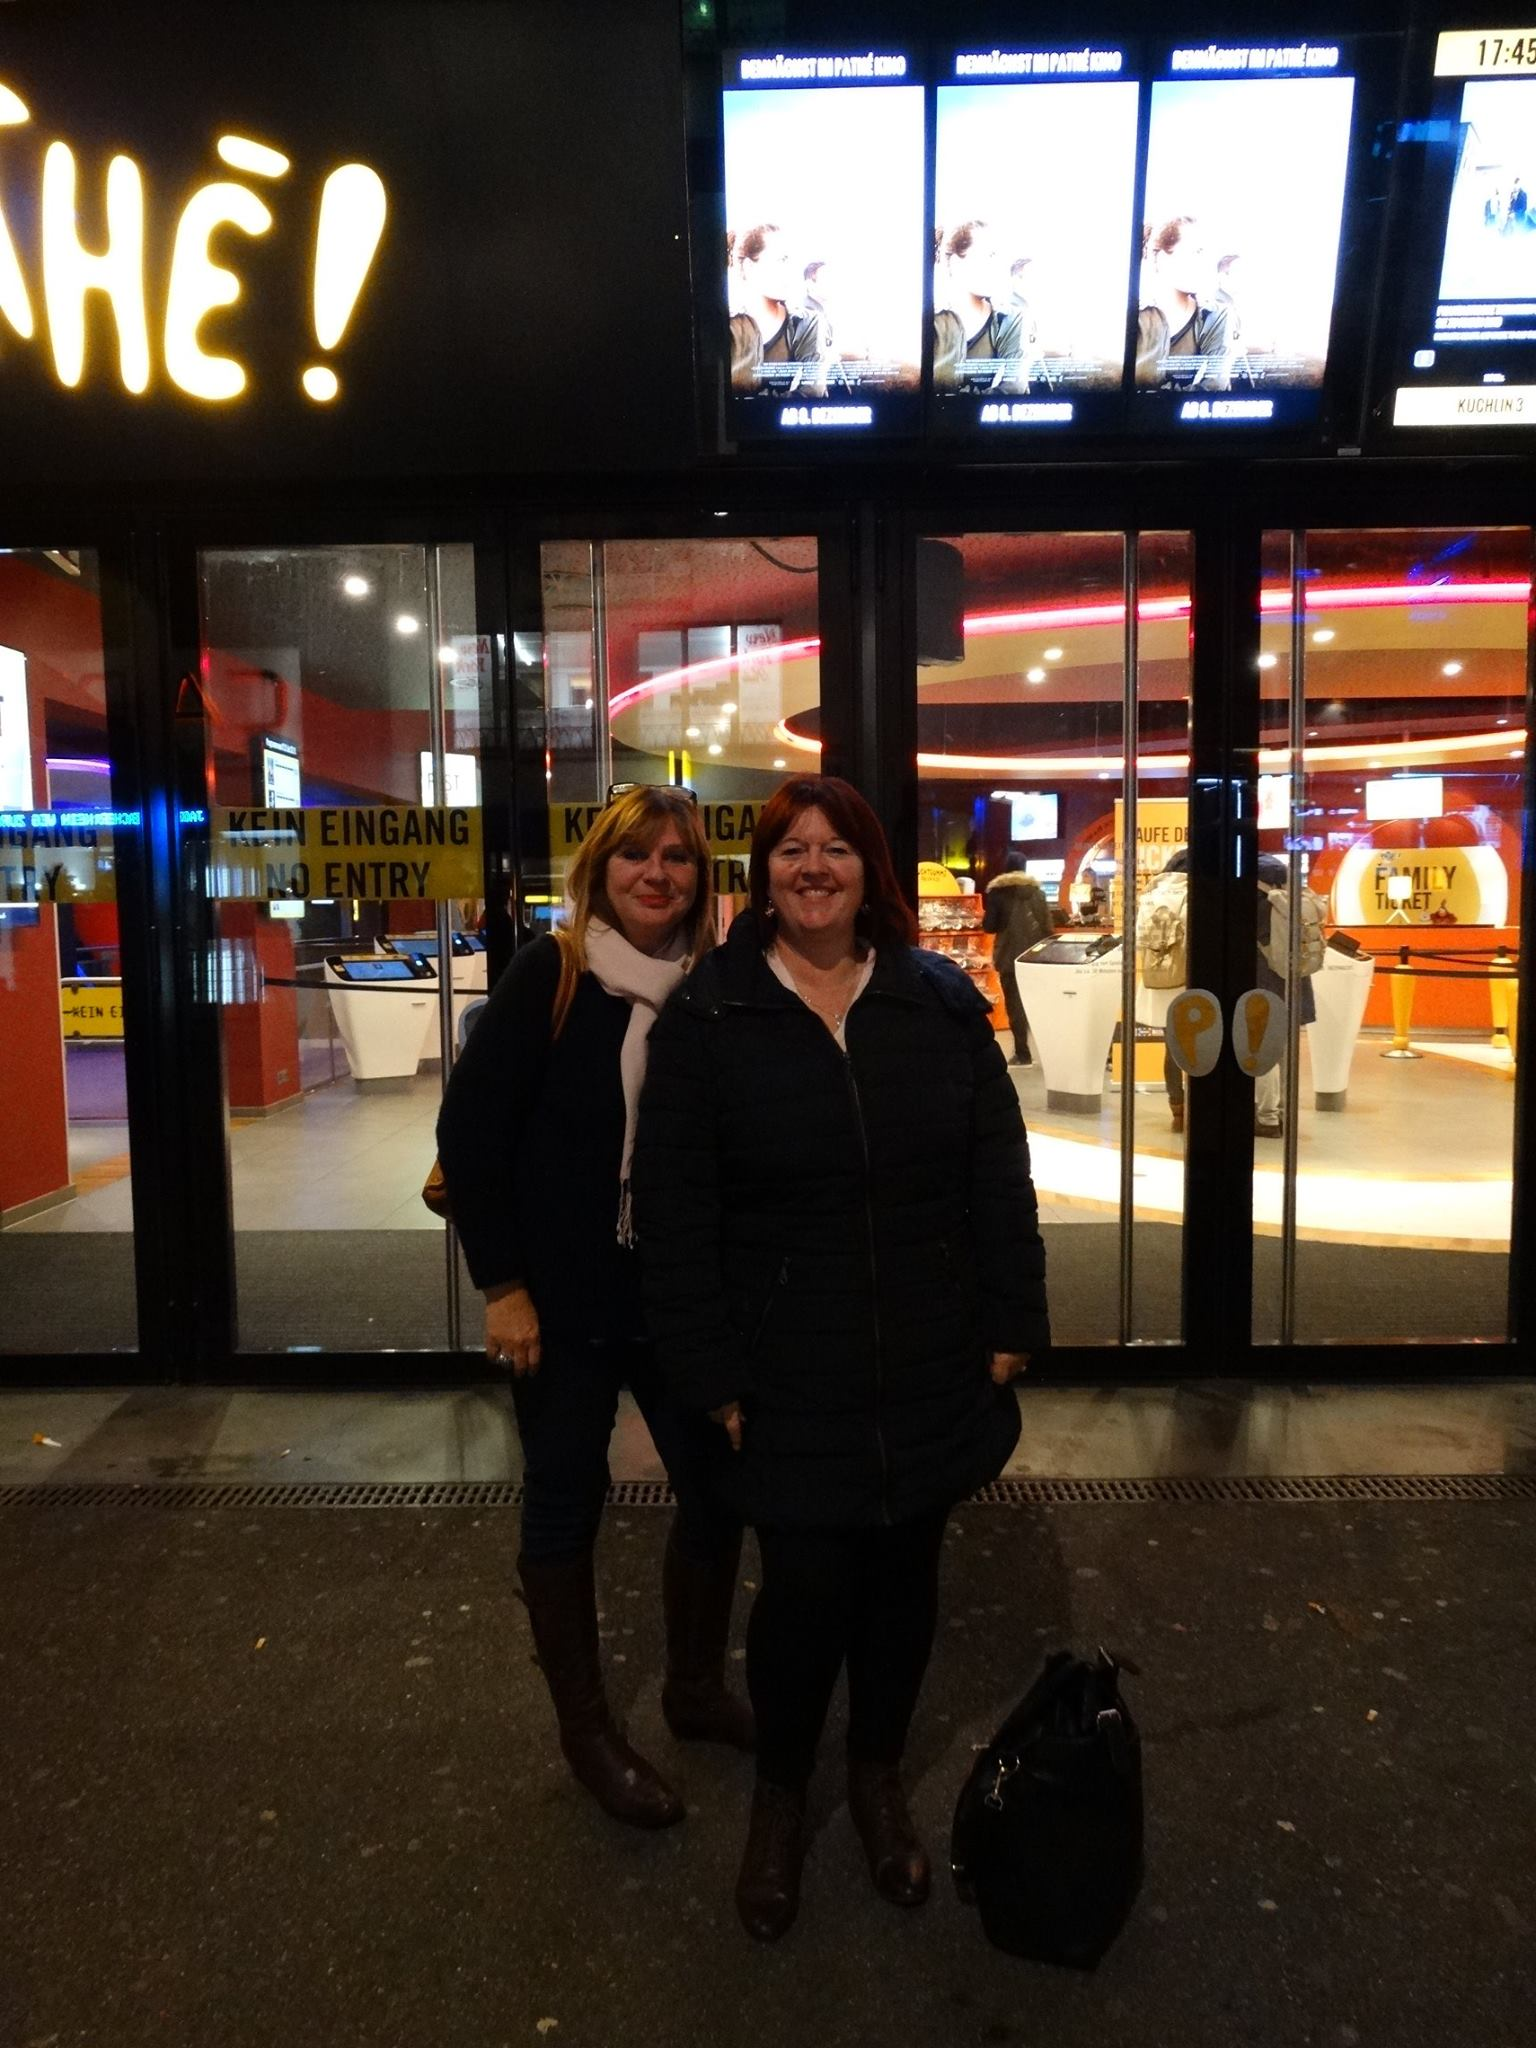 Cinema-Trip-to-see-Fantastic-Beasts-and-where-to-find-them